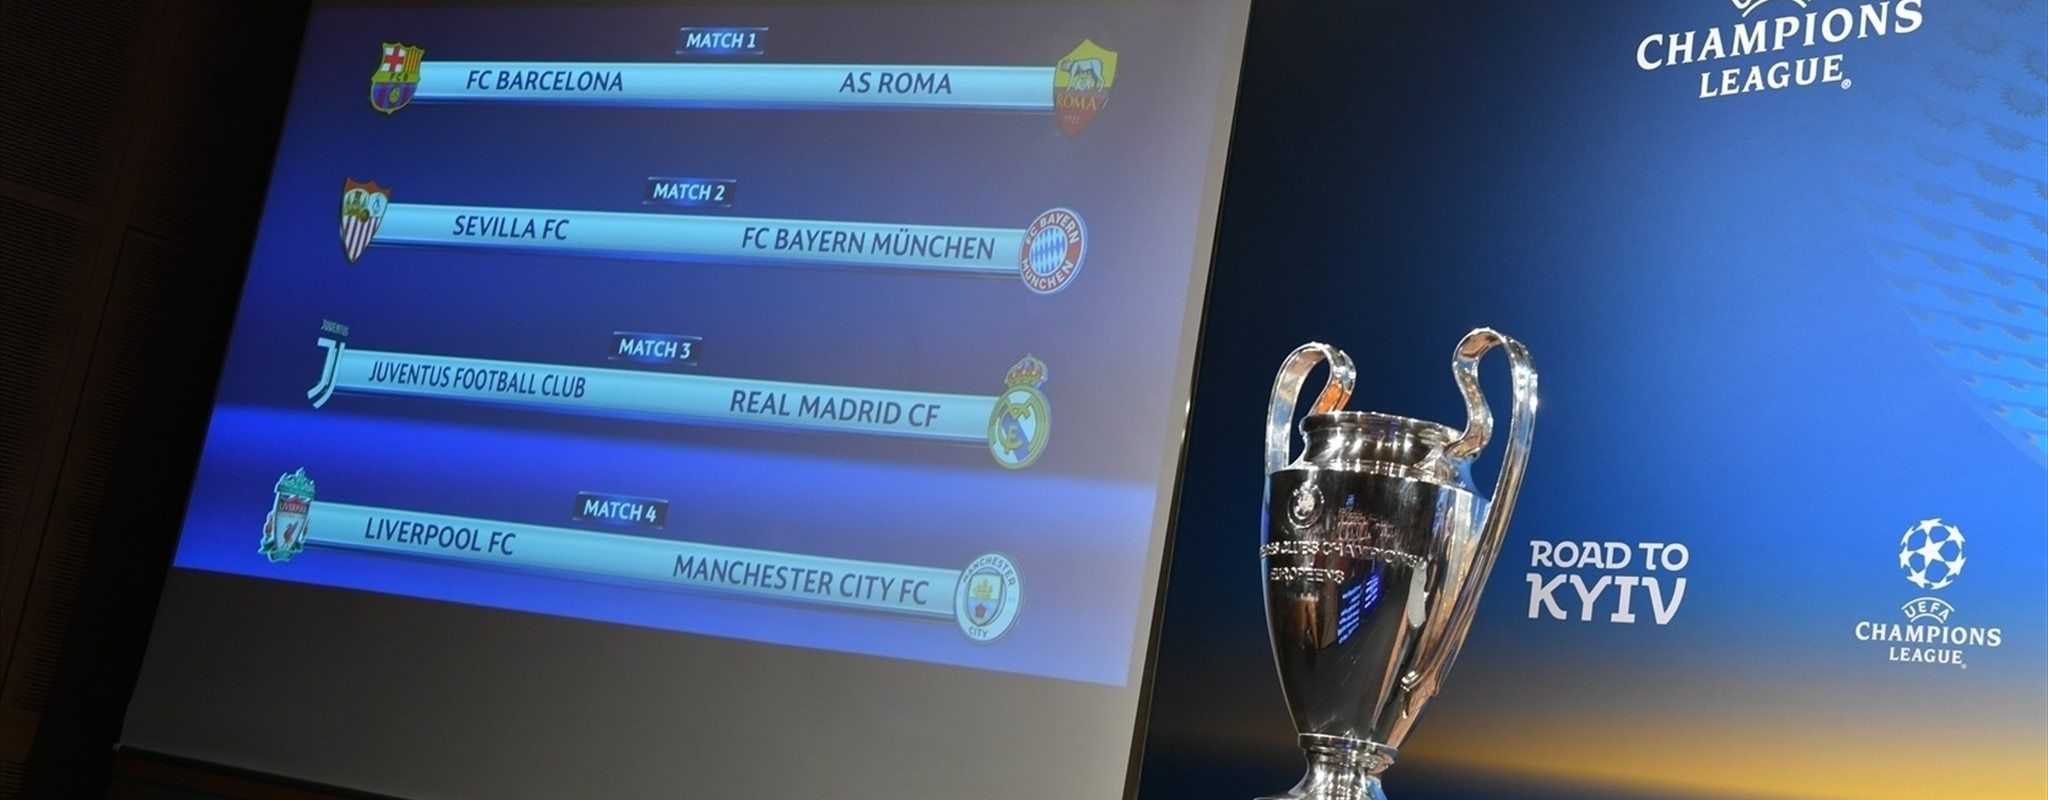 Quarter-final draw matches Juve with Real Madrid: full details